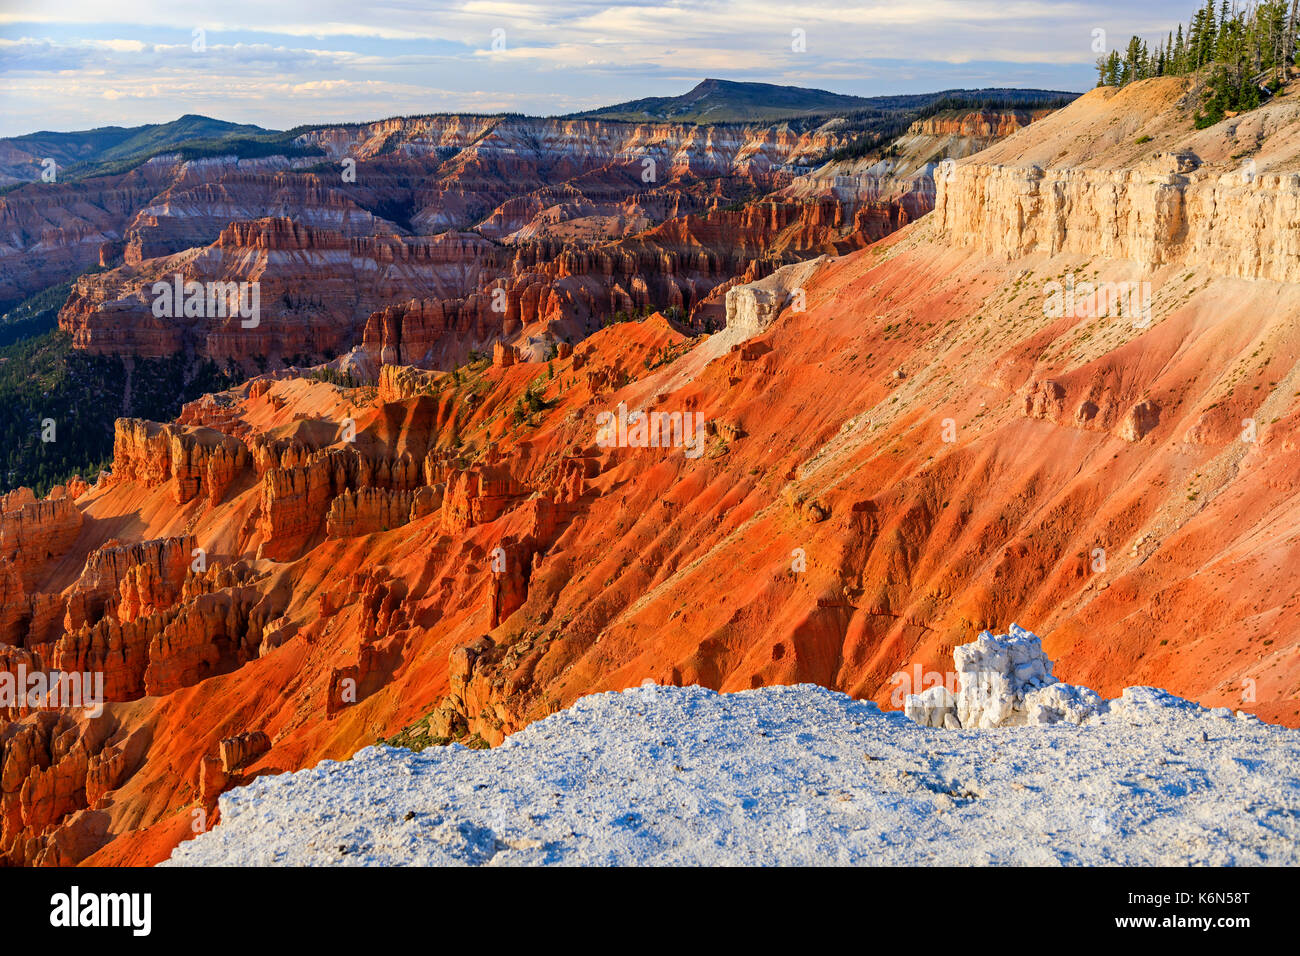 The Amphitheater of Cedar Breaks National Monument, Utah, USA.  The amphitheater is over 2,000 feet deep and over three miles in diameter. - Stock Image